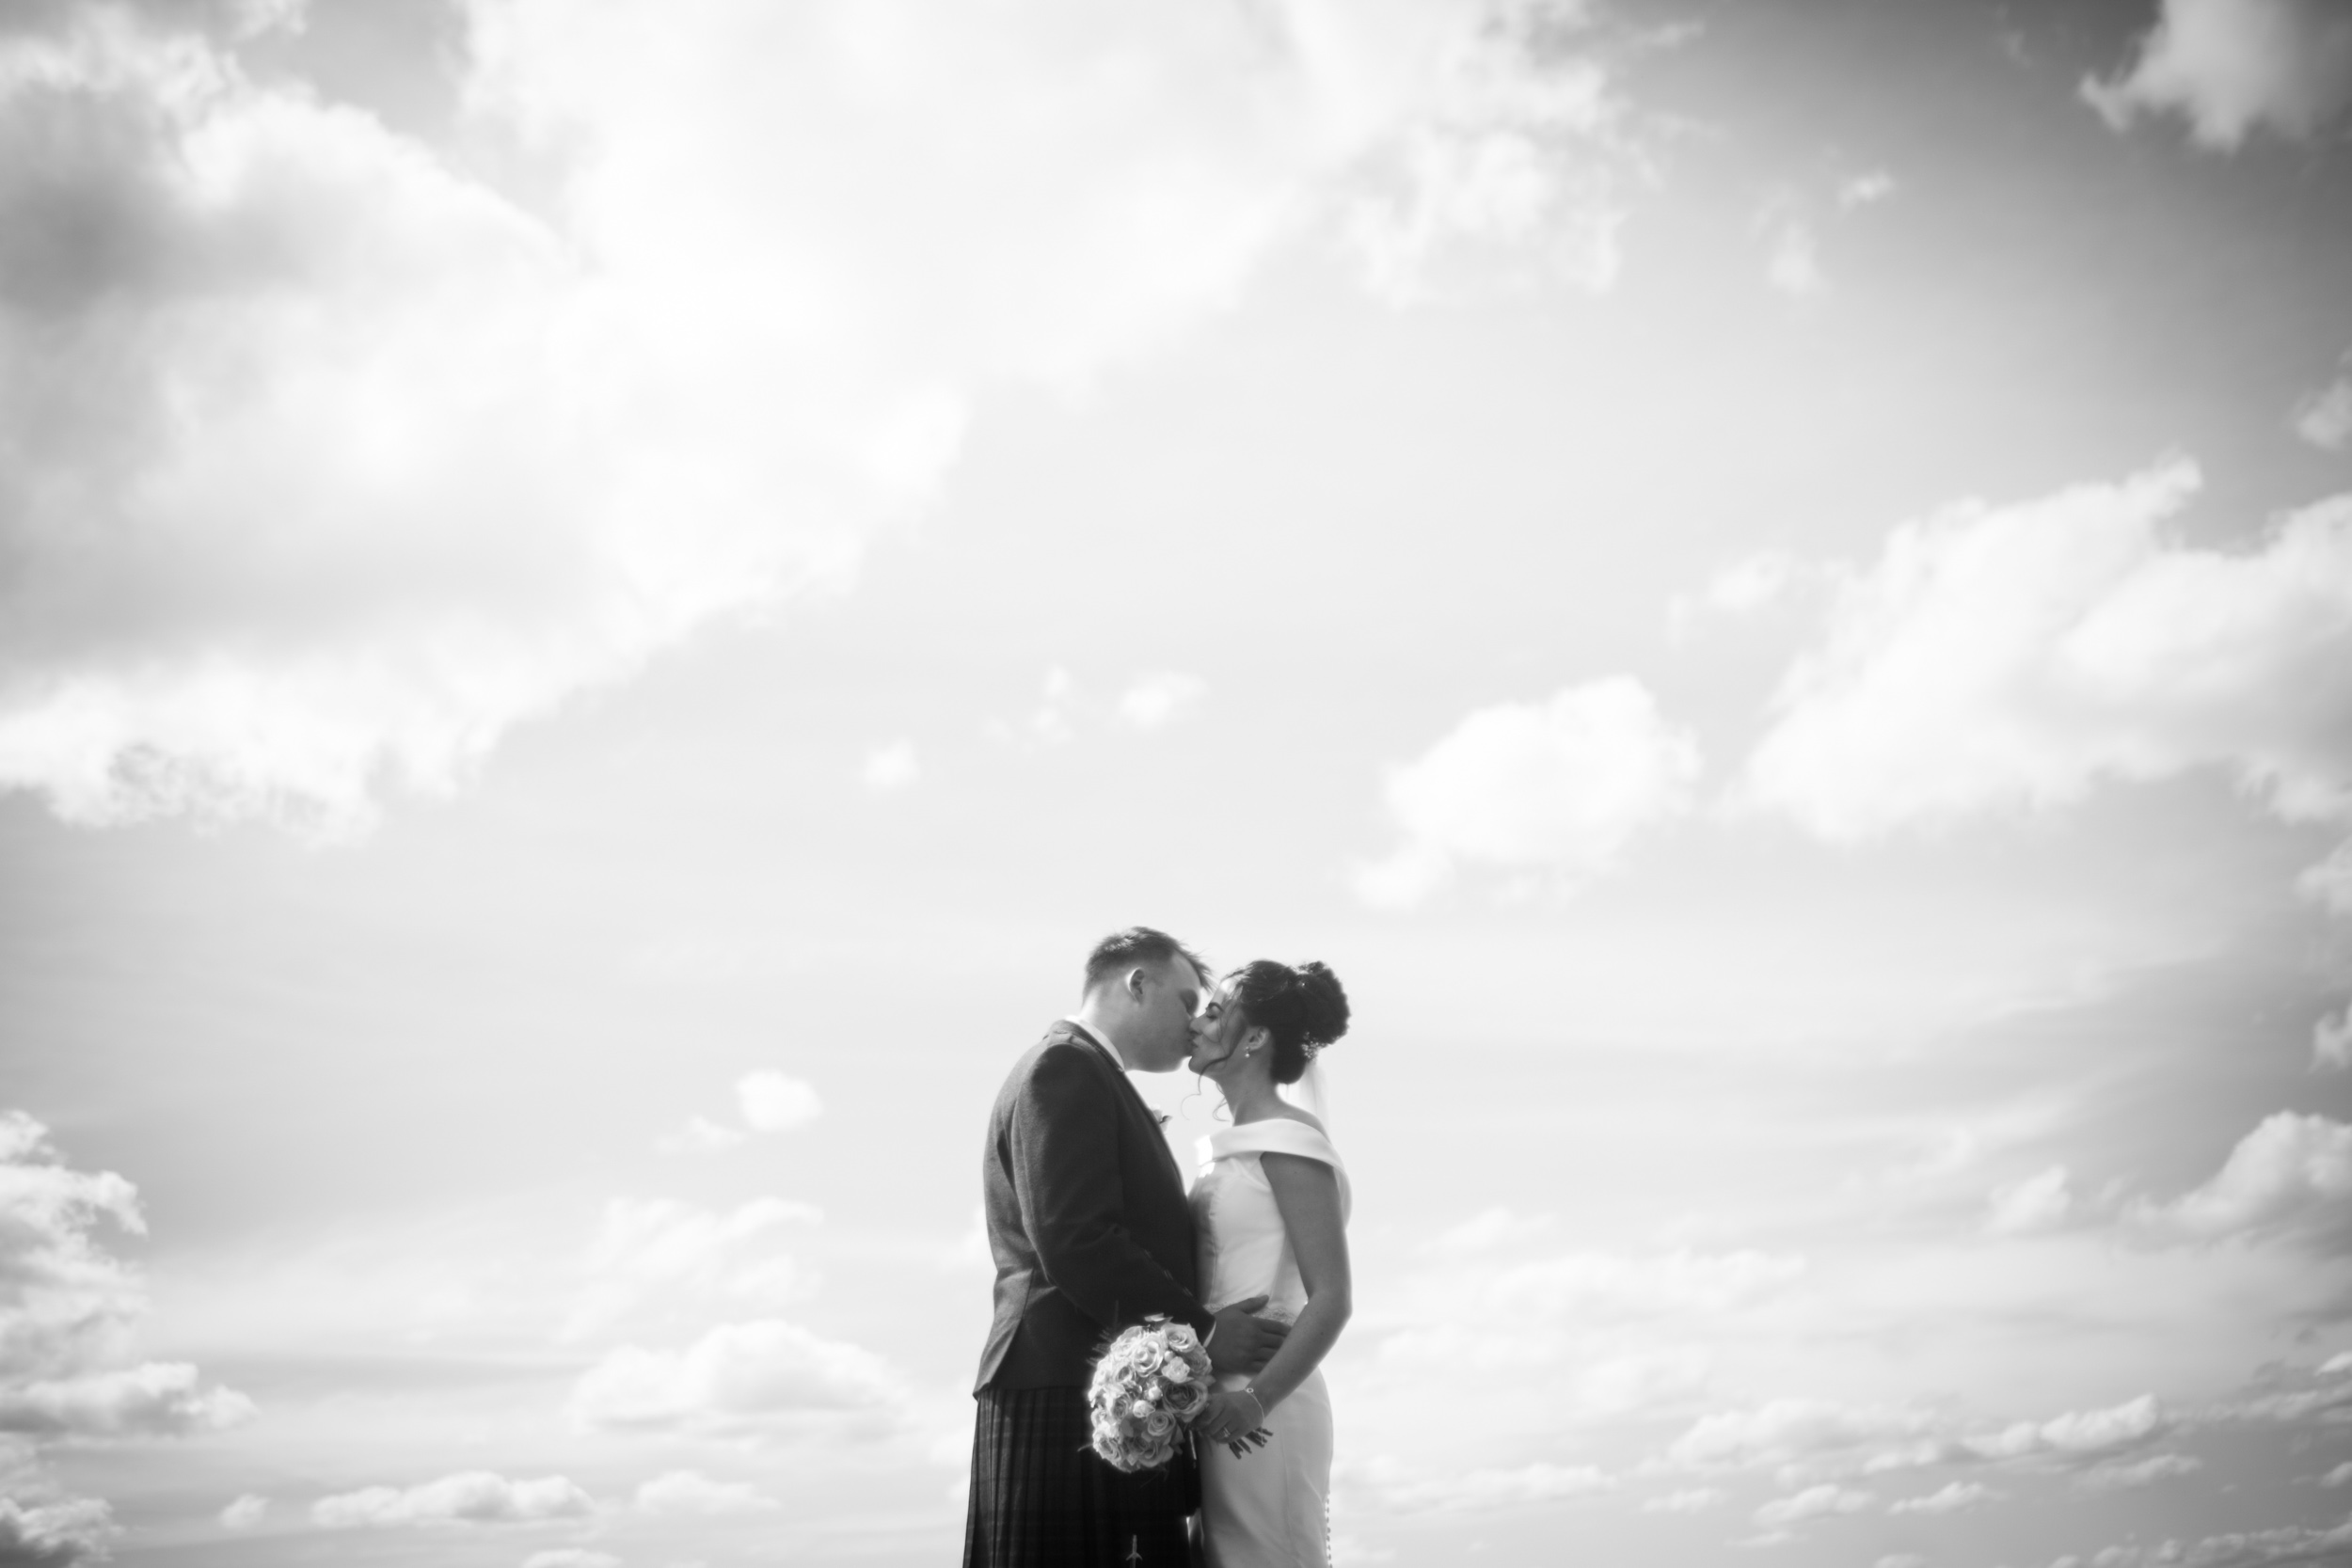 Siobhan and Gregor's wedding - The Vu - Neil Wykes Photography-101.jpg